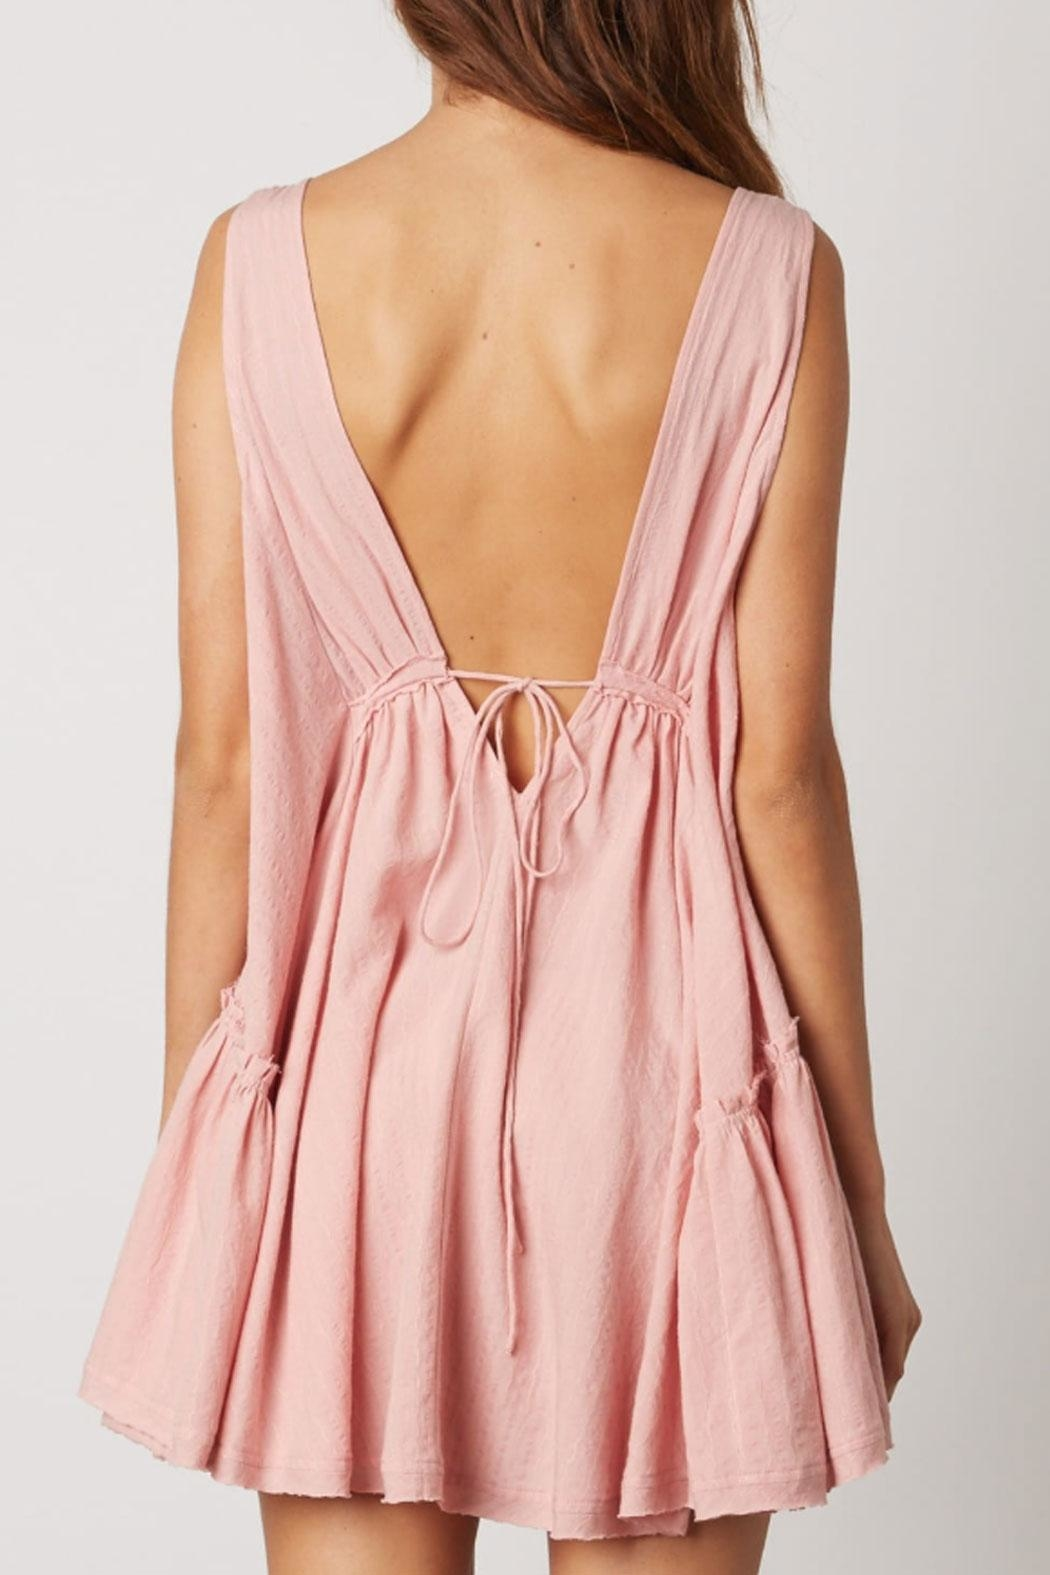 Cotton Candy Deep-V Swing Dress - Back Cropped Image